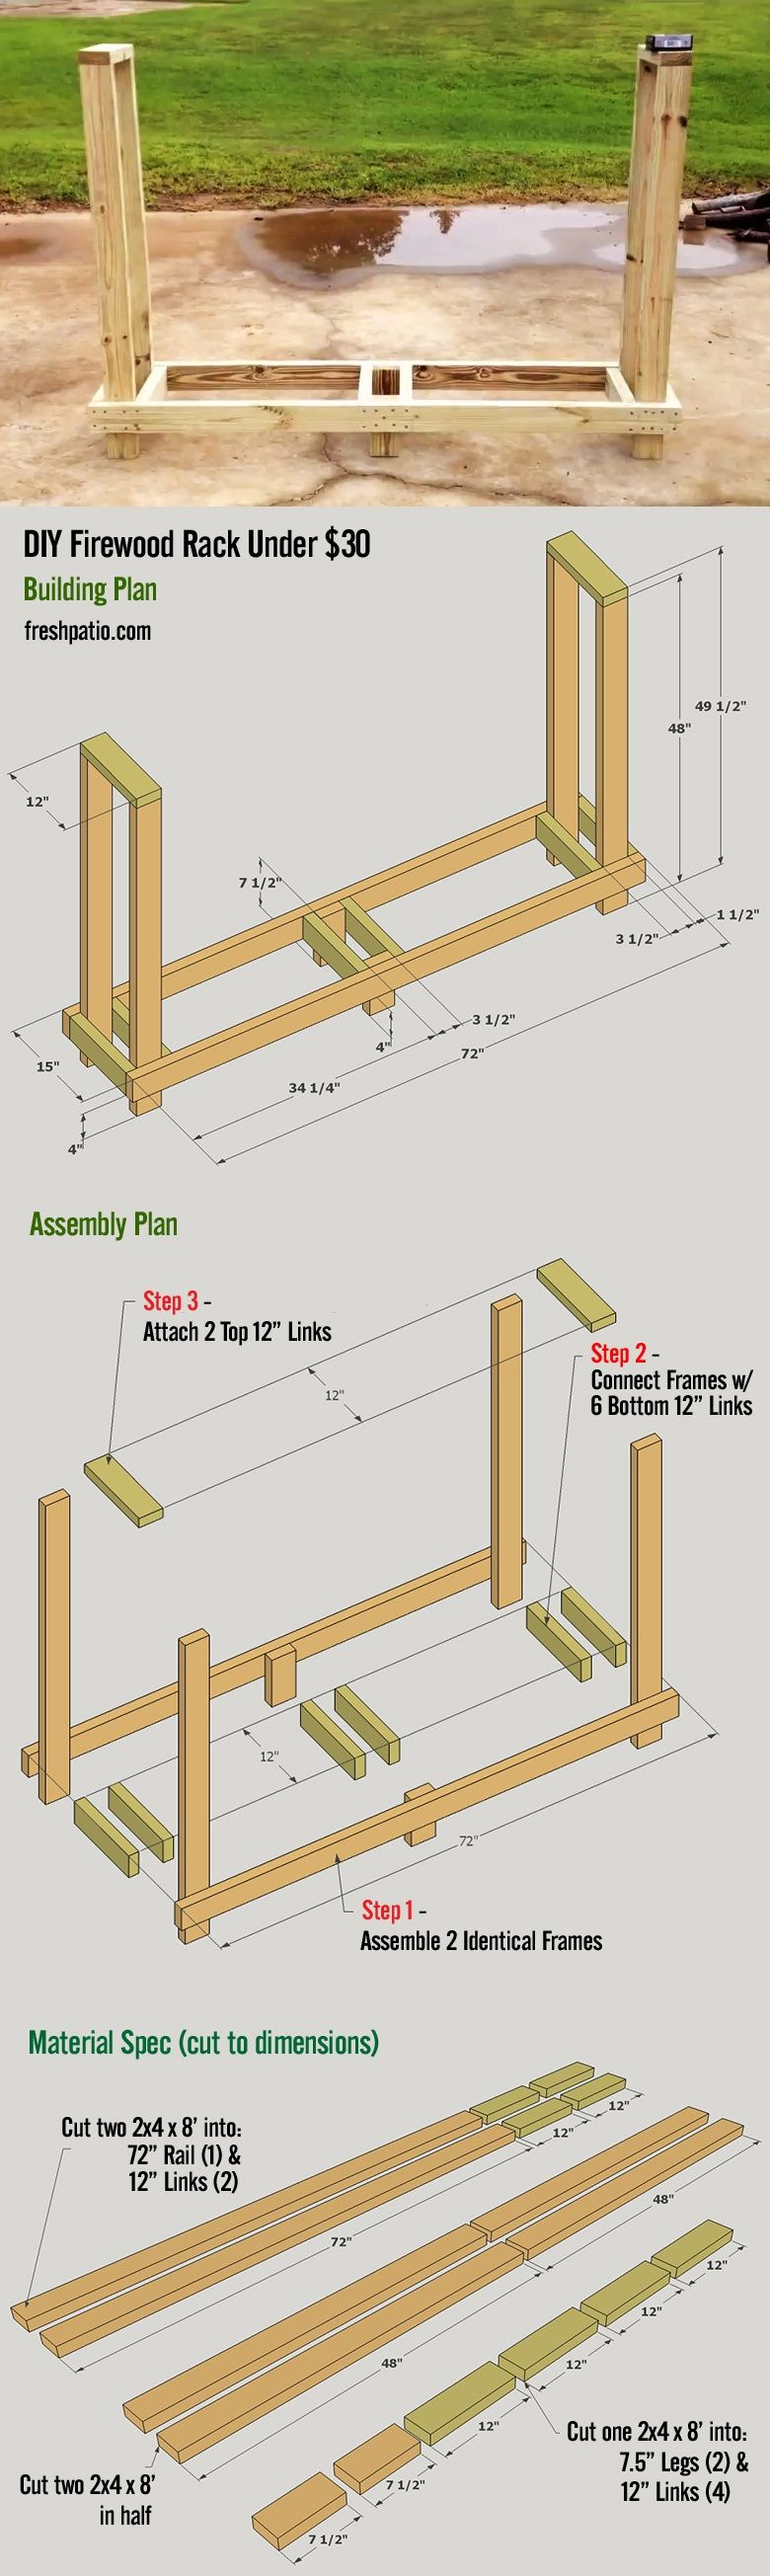 Free firewood rack plan easy to build for under